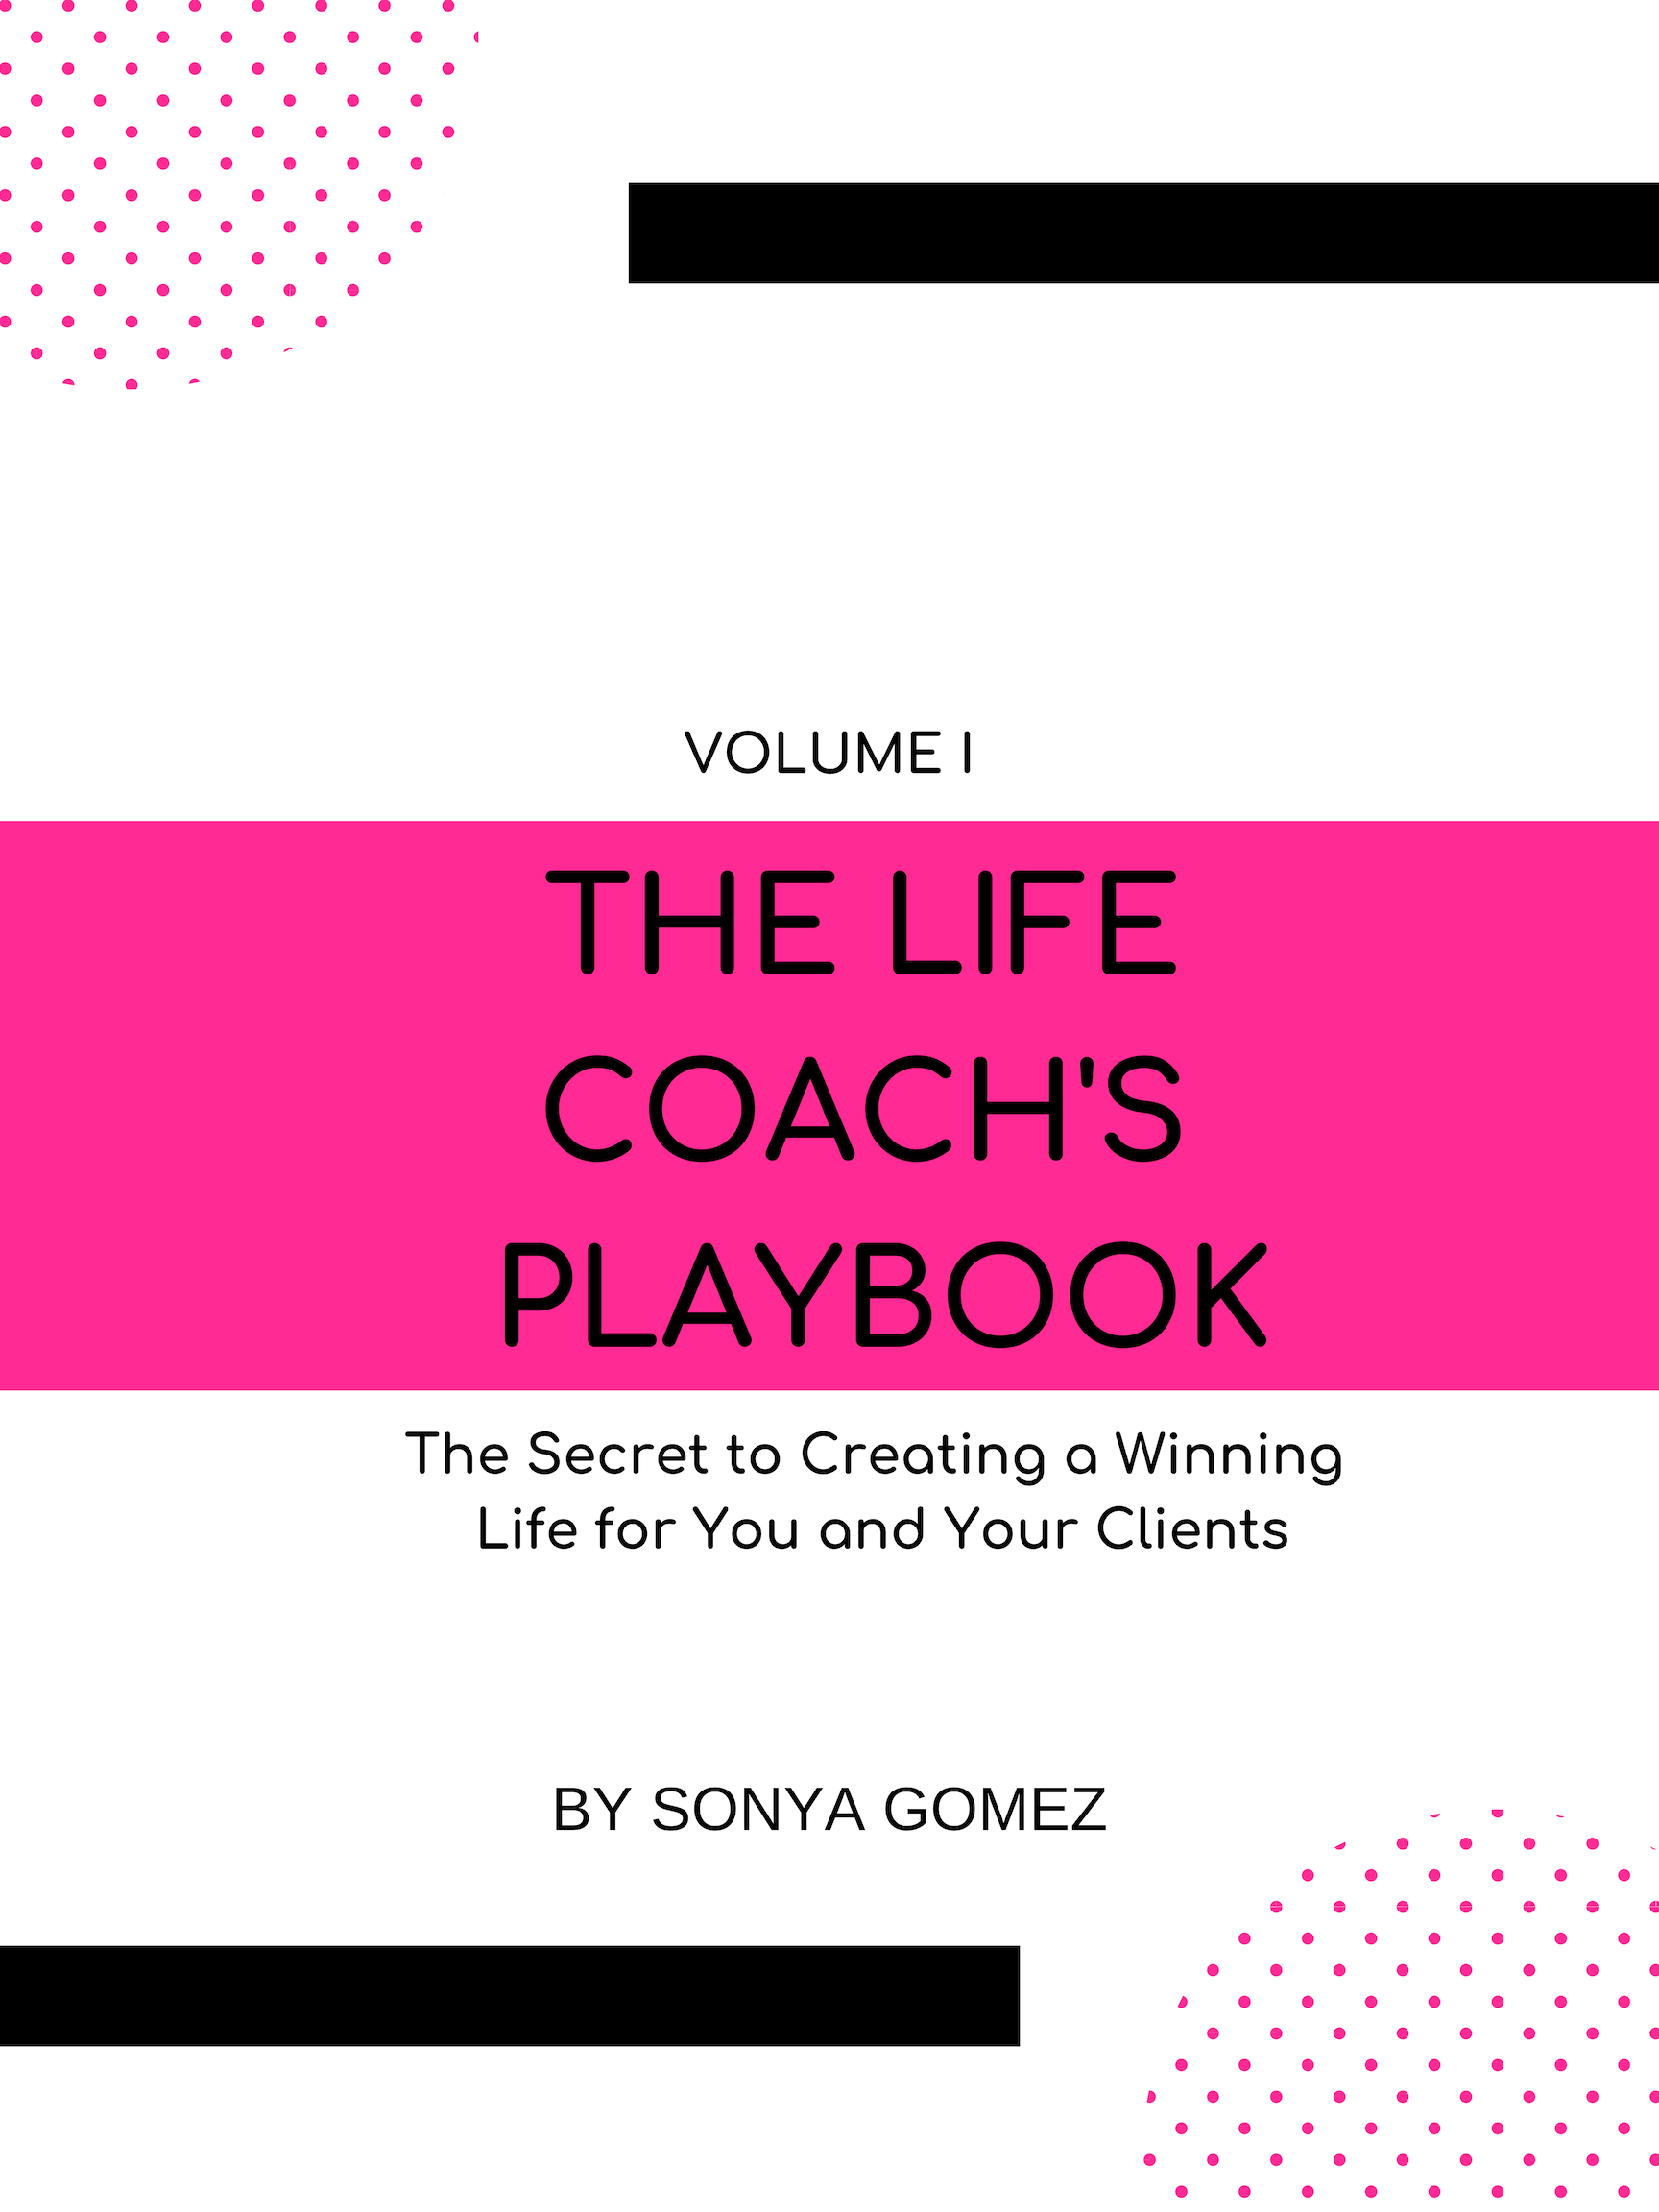 Get Your Copy! - Volume I of The Life Coach's Playbook: The Secret to Creating a Winning Life for You and Your Clients is for Life Coaches, aspiring Life Coaches, or anyone with a calling and desire to help others live to their fullest potential. This fun and informative eBook is filled with practical steps, advice, and activities you can use on yourself and with your clients